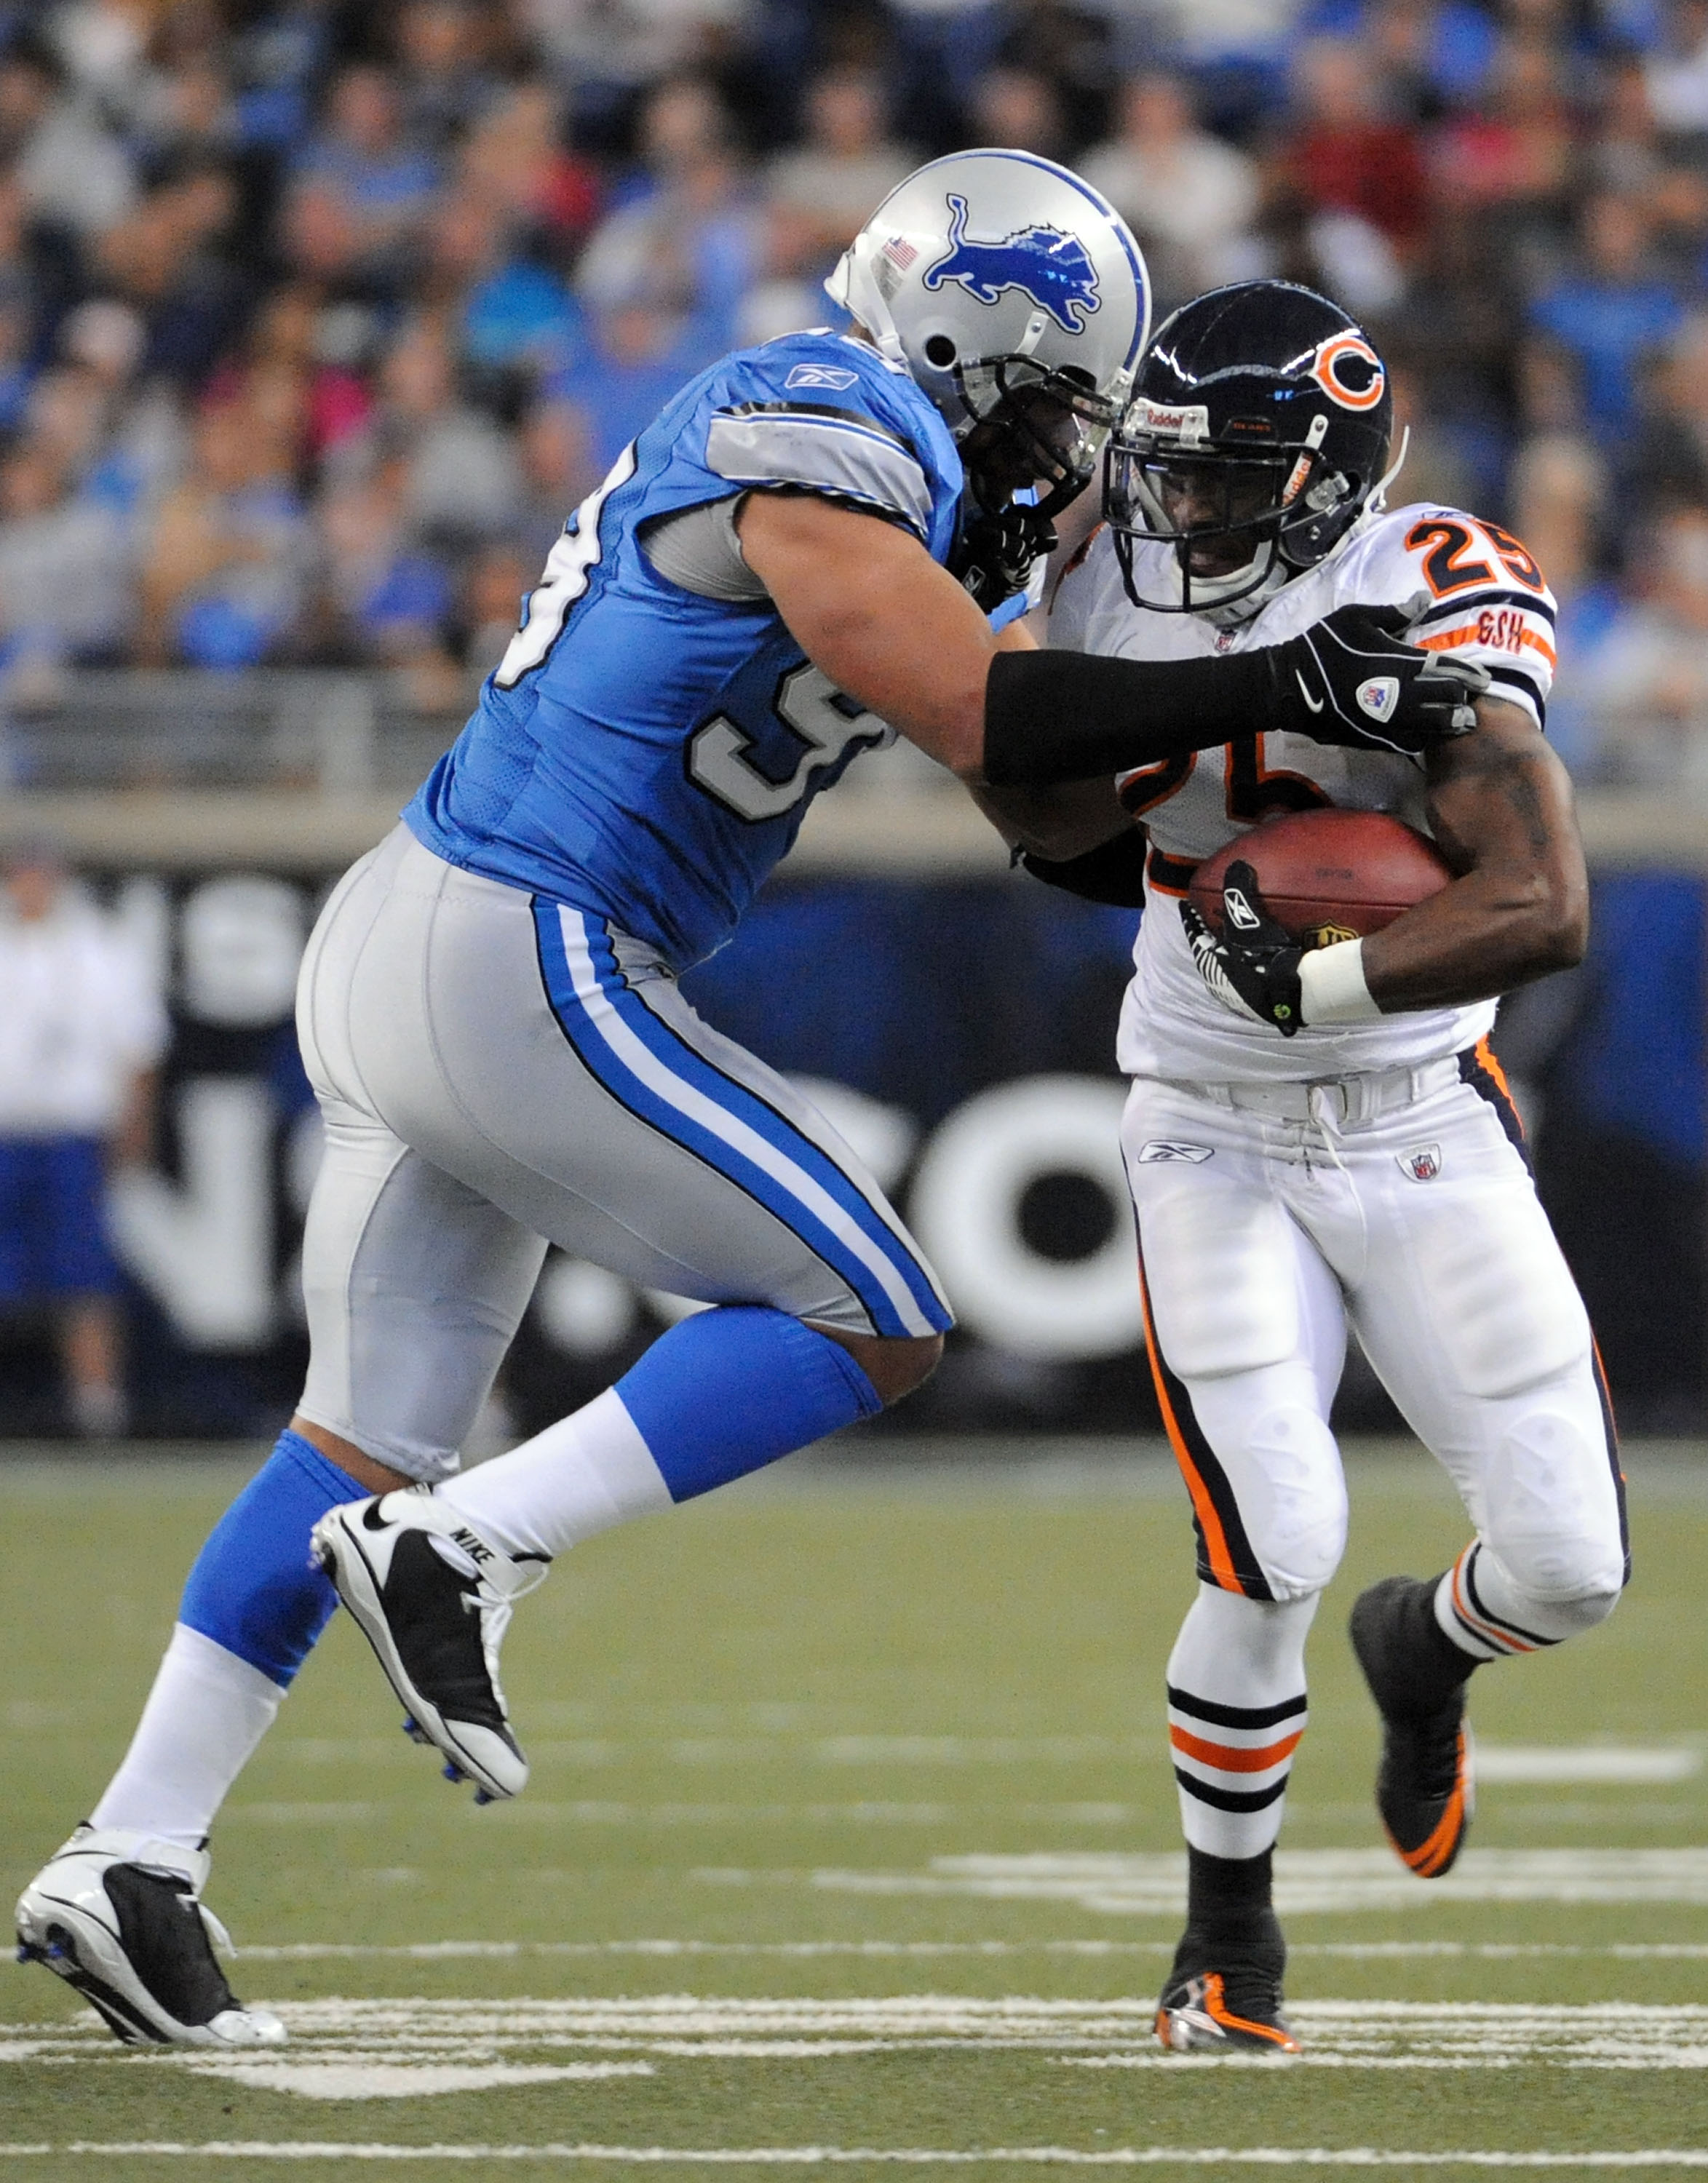 DETROIT - OCTOBER 05:  Garrett Wolfe #25 of the Chicago Bears is tackled by Dewayne White #99 of the Detroit Lions during the first quarter at Ford Field on October 5, 2008 in Detroit, Michigan.  The Bears won 34-7.  (Photo by Harry How/Getty Images)